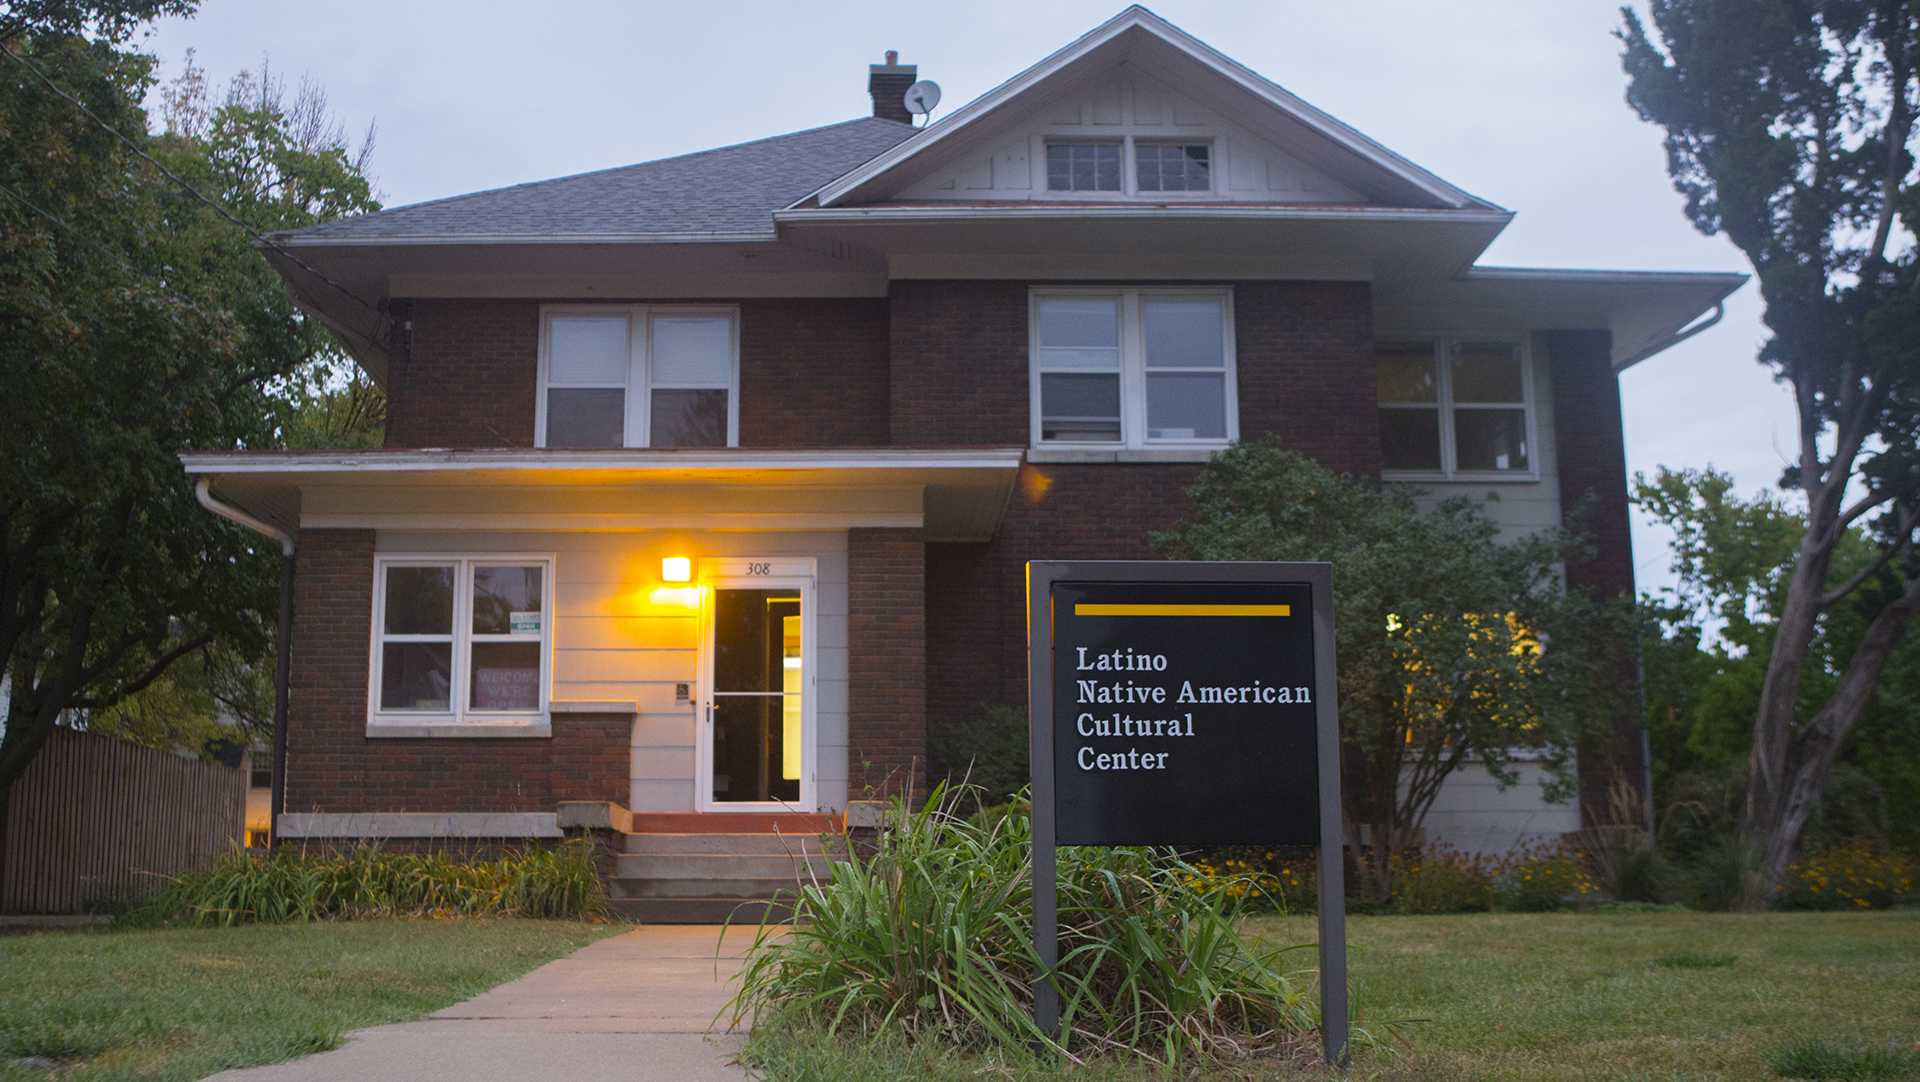 The Latino Native American Cultural Center is seen on Monday, Sept. 18, 2017. (Lily Smith/The Daily Iowan)